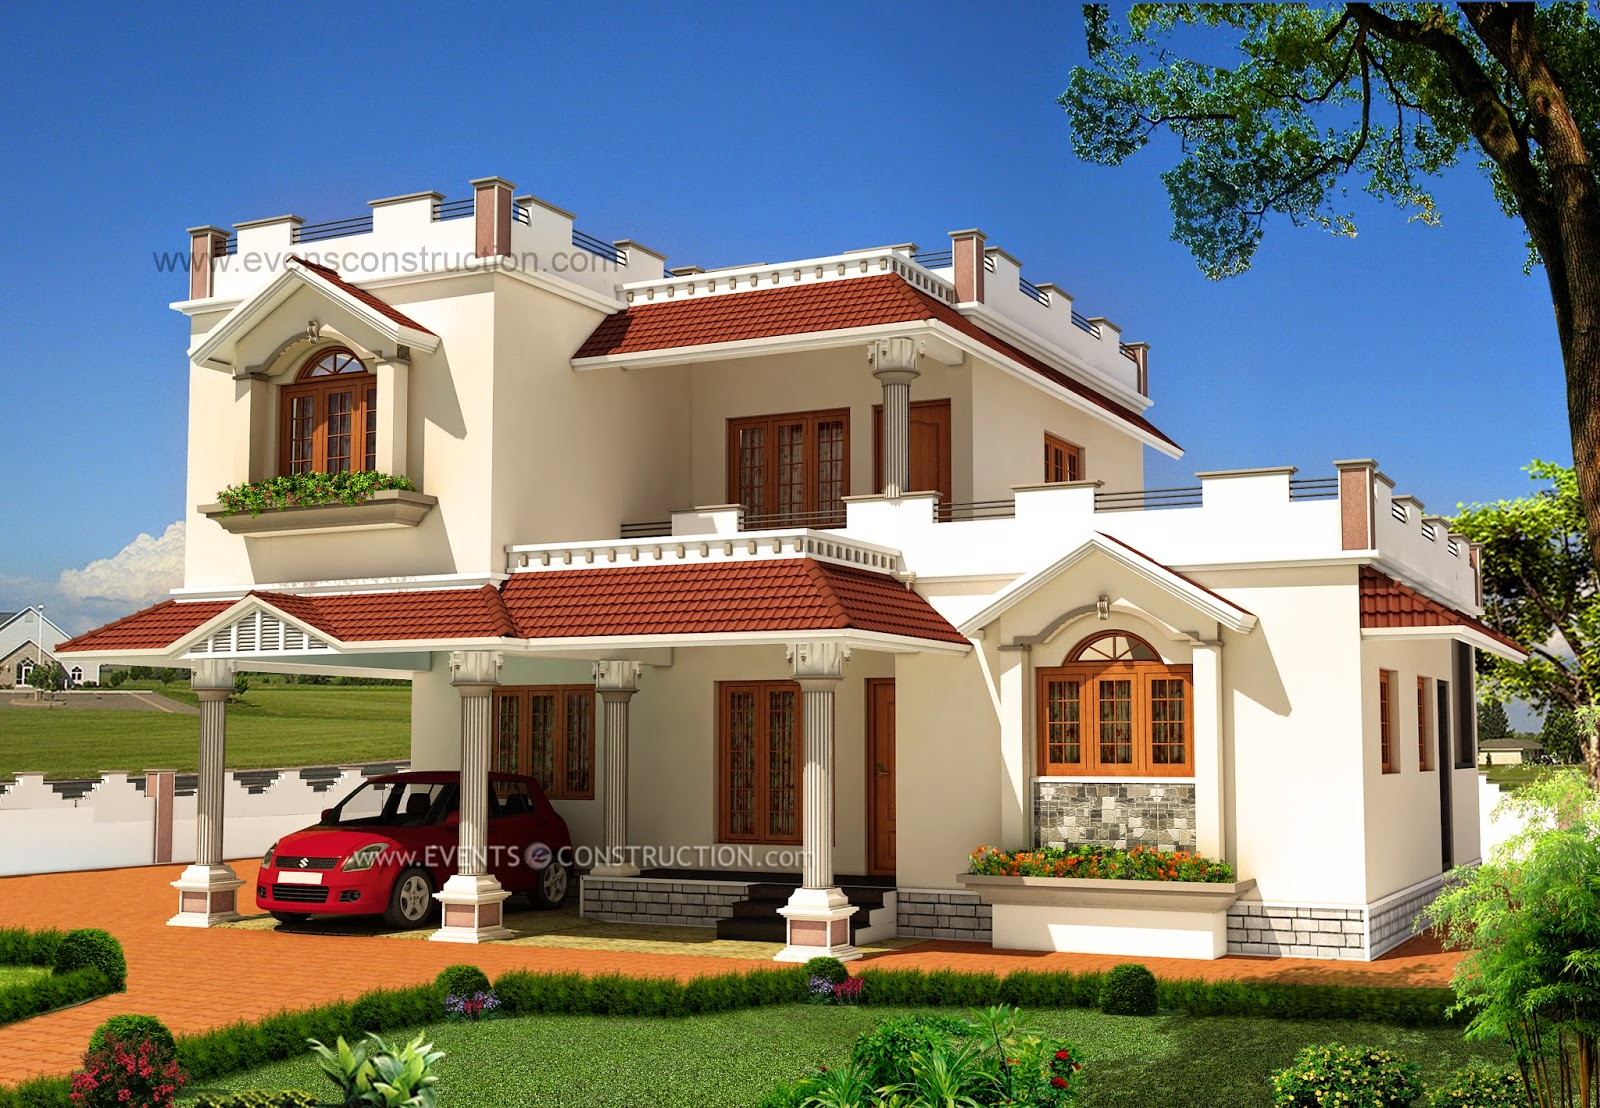 Evens construction pvt ltd september 2014 for Home exterior design india residence houses